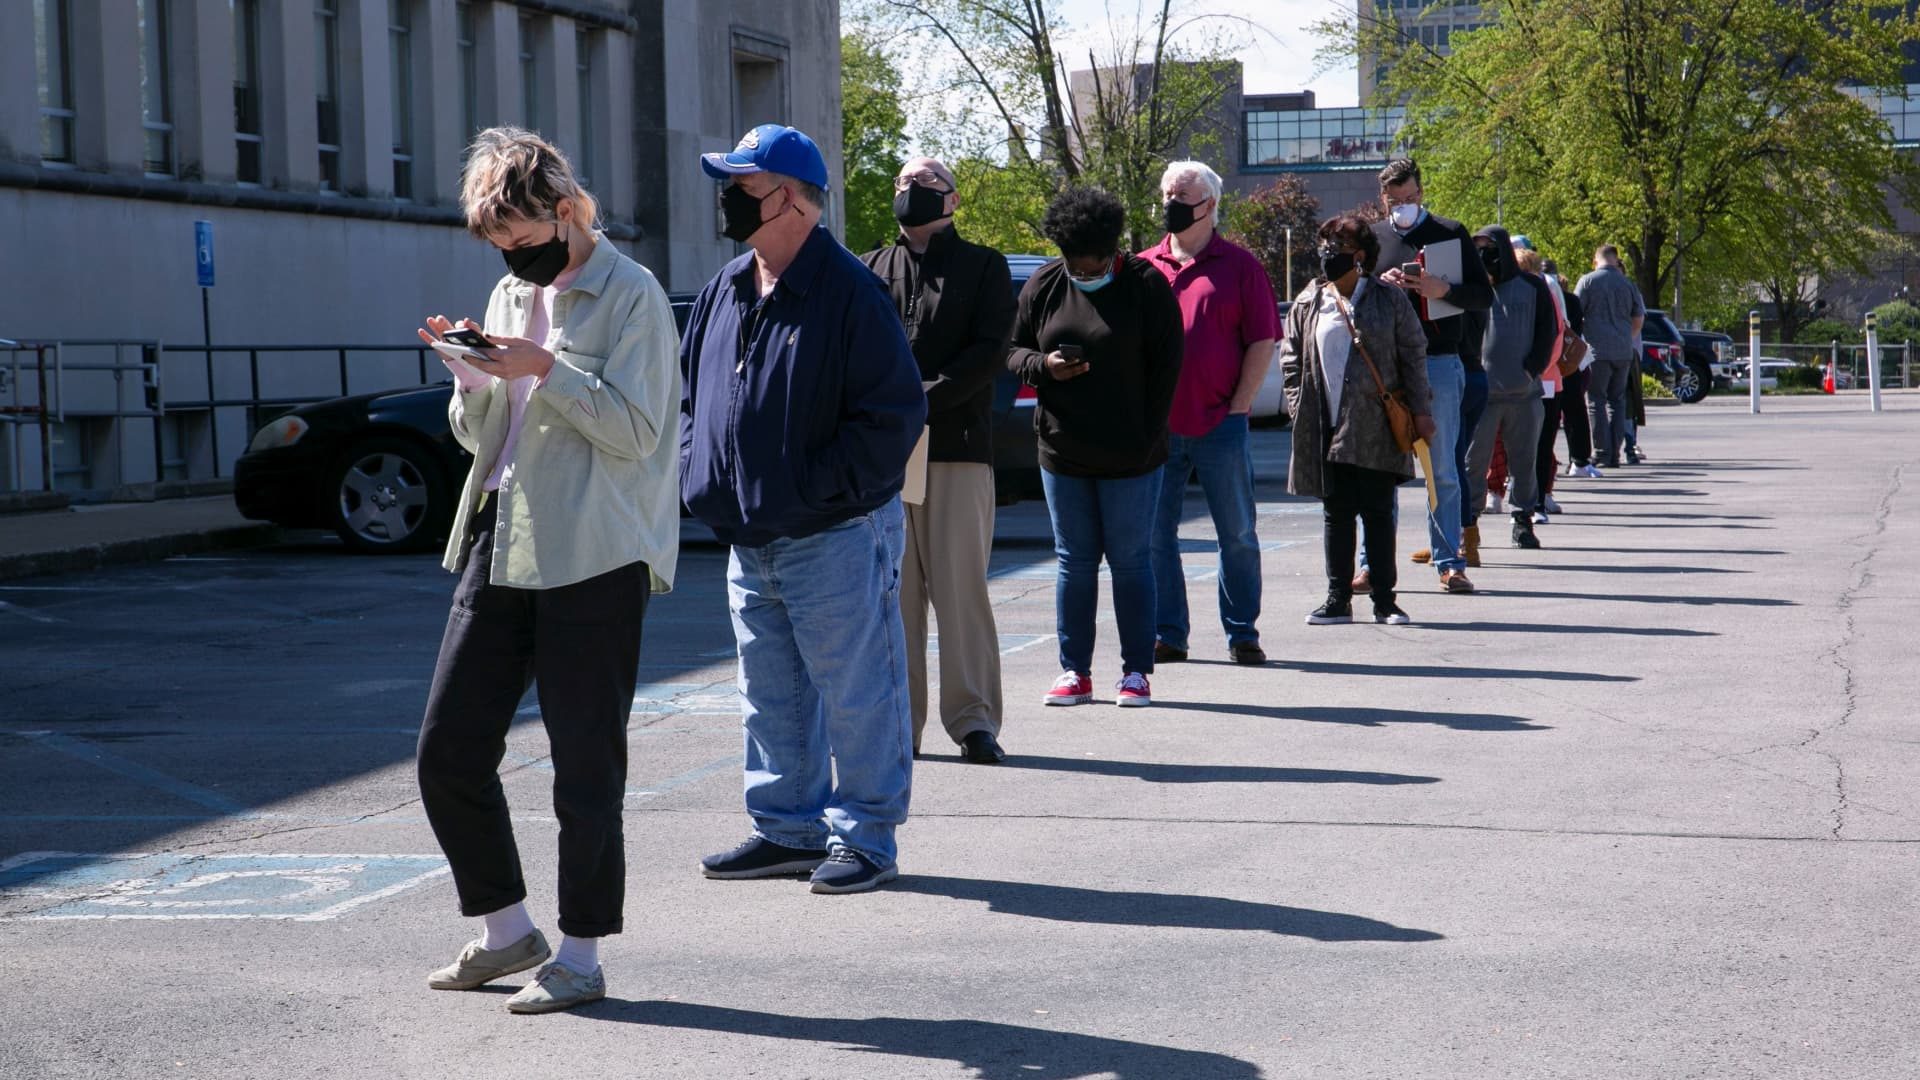 People line up outside a newly reopened career center for in-person appointments in Louisville, Kentucky, on April 15, 2021.